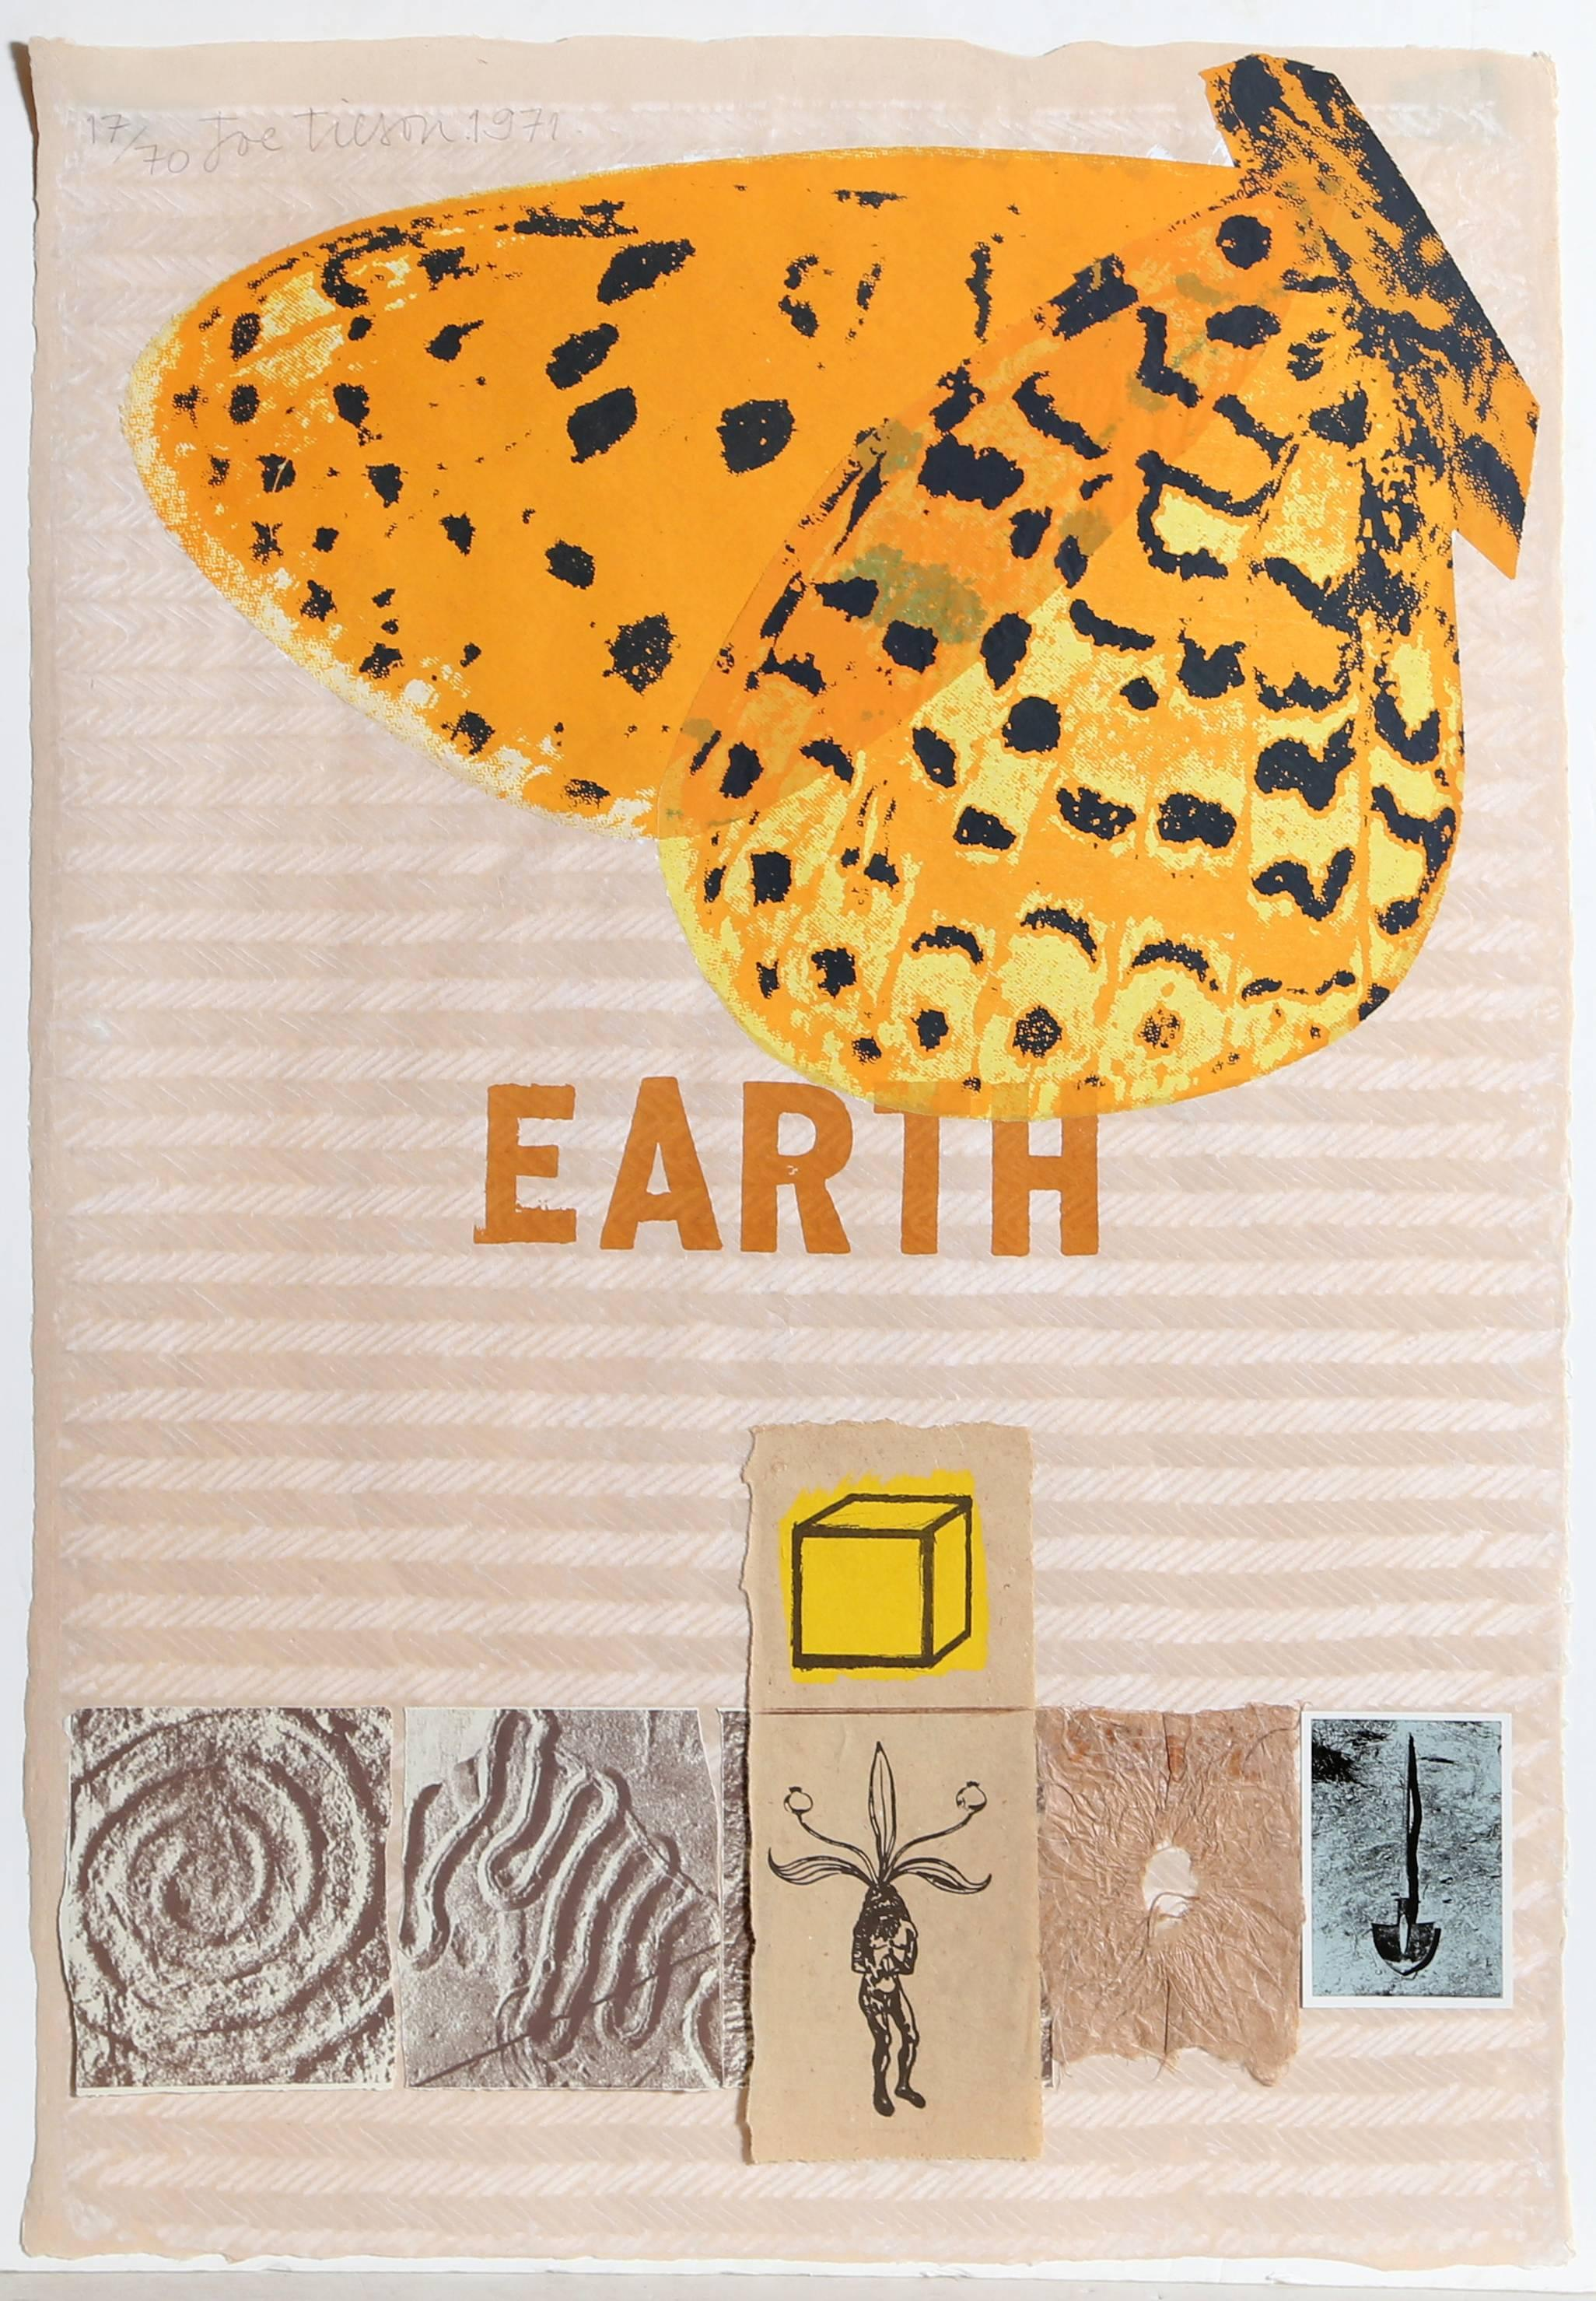 Earth (with Butterfly)